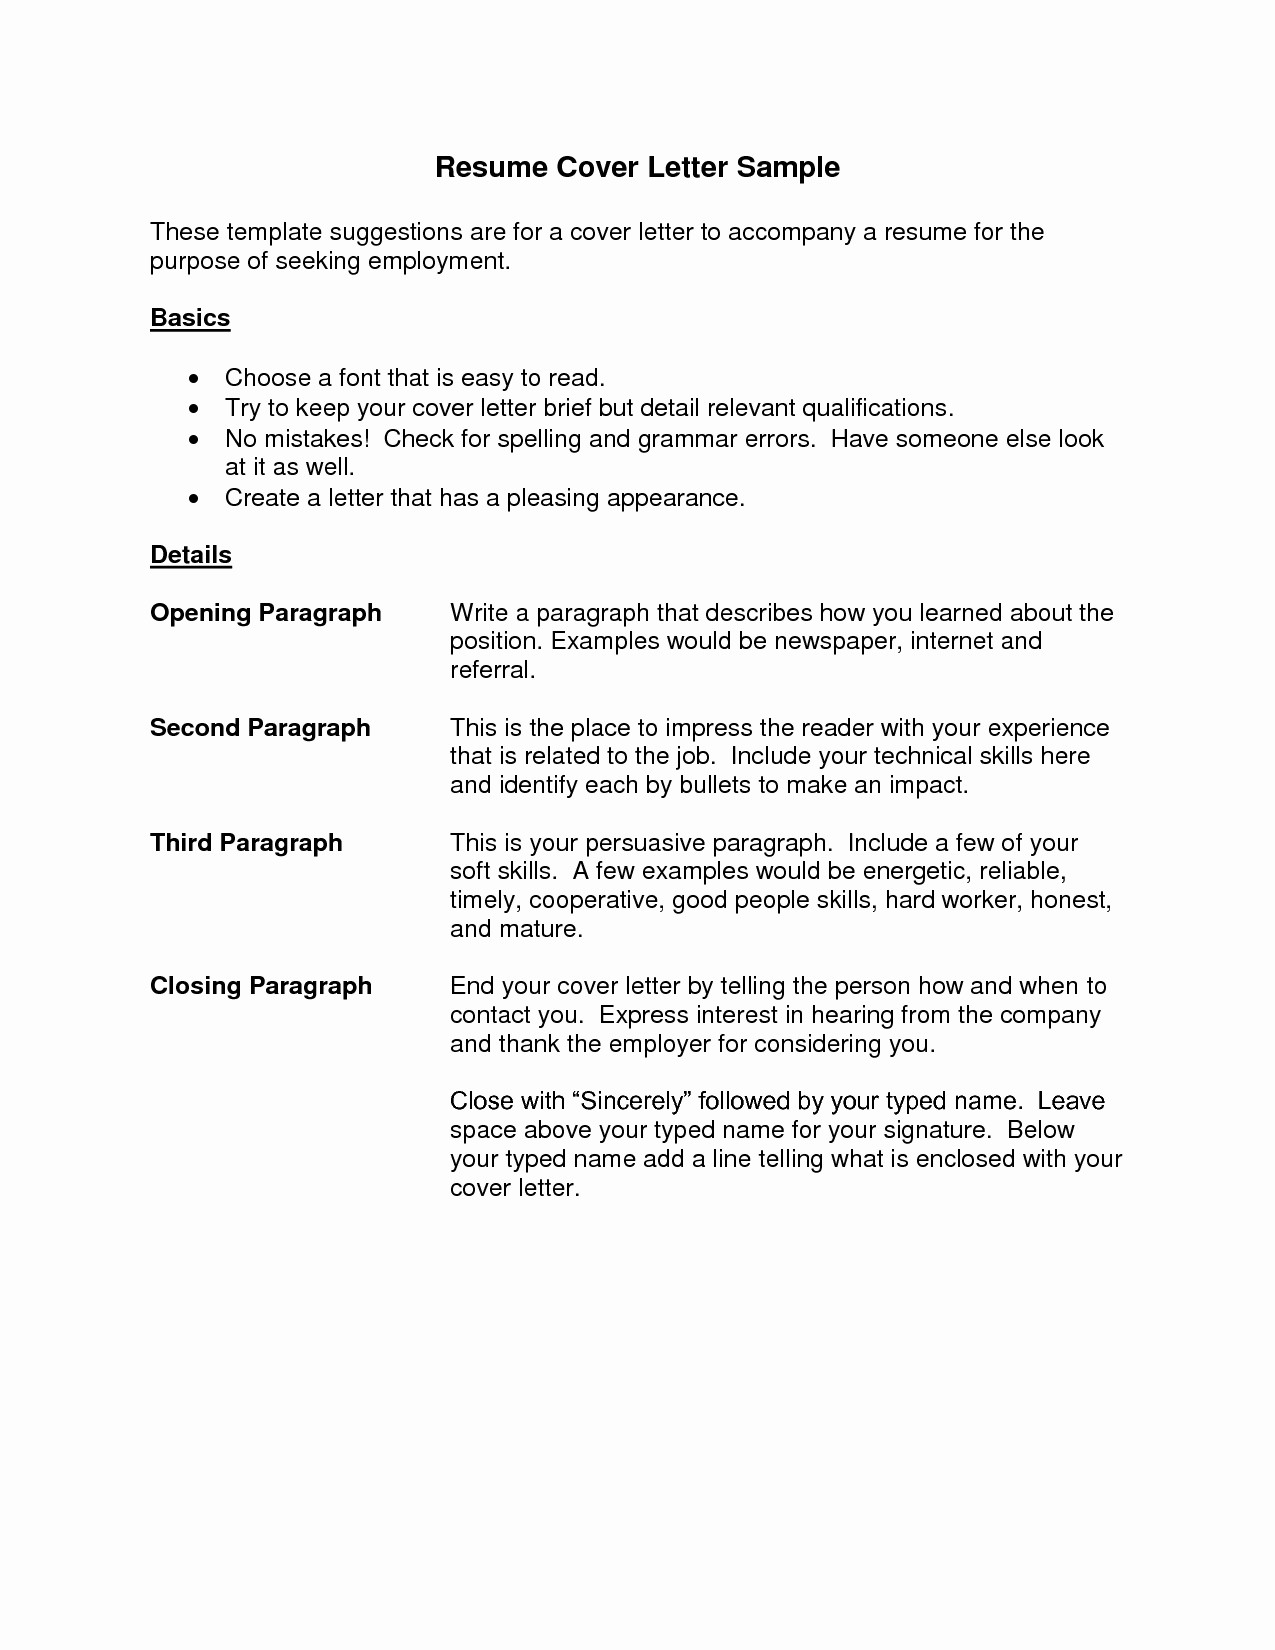 Cover Letter Templates for Resumes Best Of Example Cover Letter for Resume Template